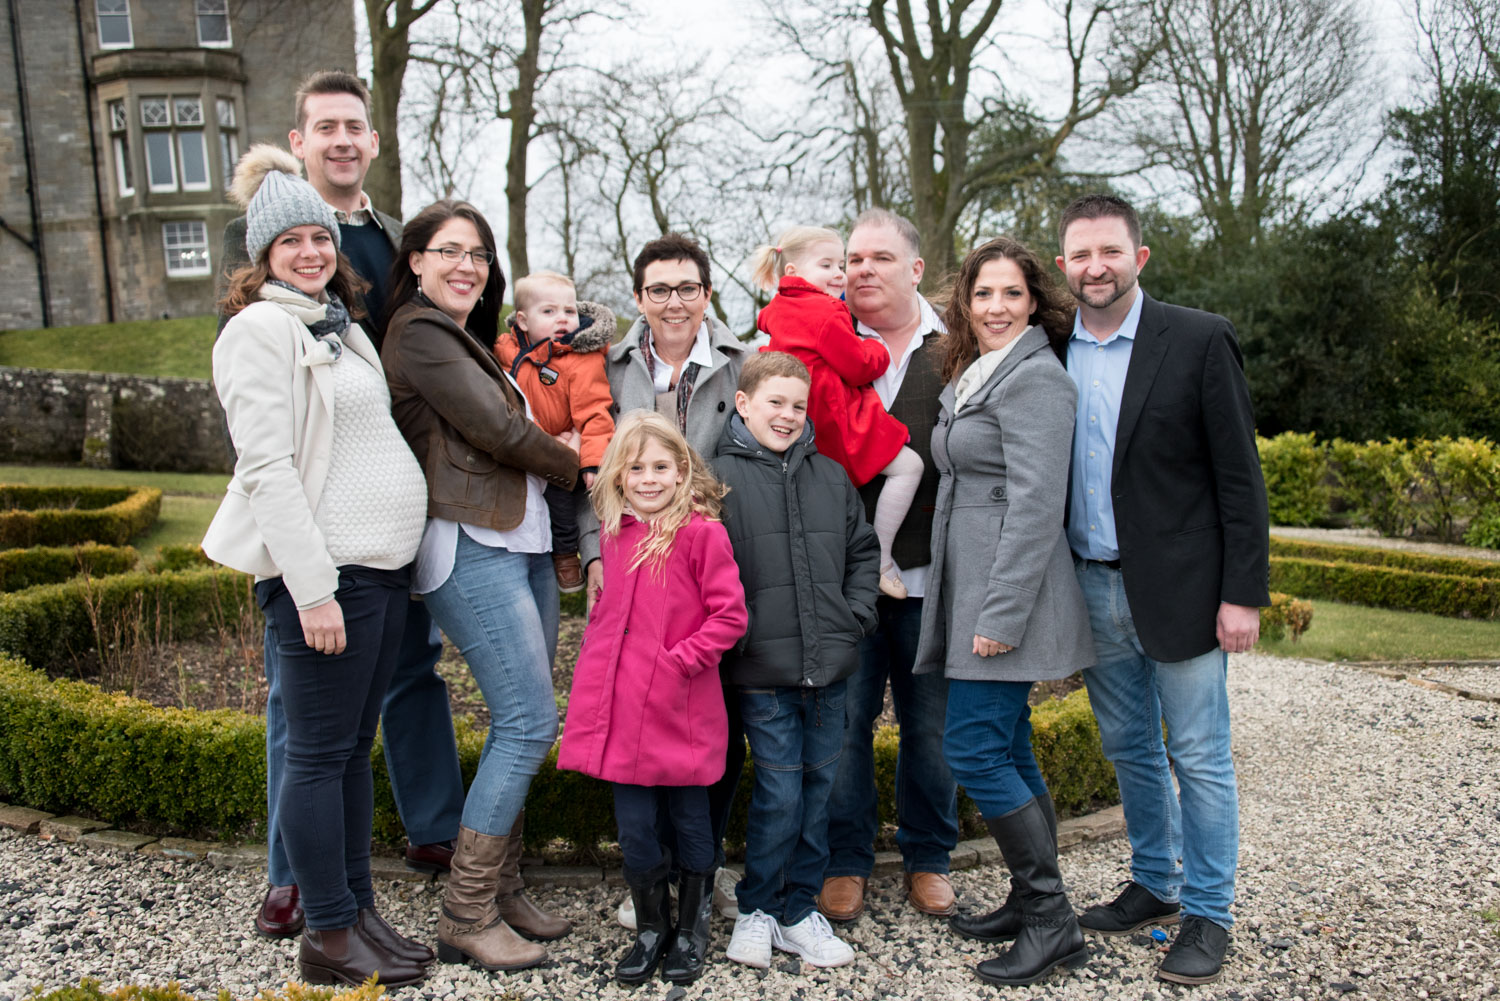 Family Photo Shoot In Dunfermline - large family family group photo